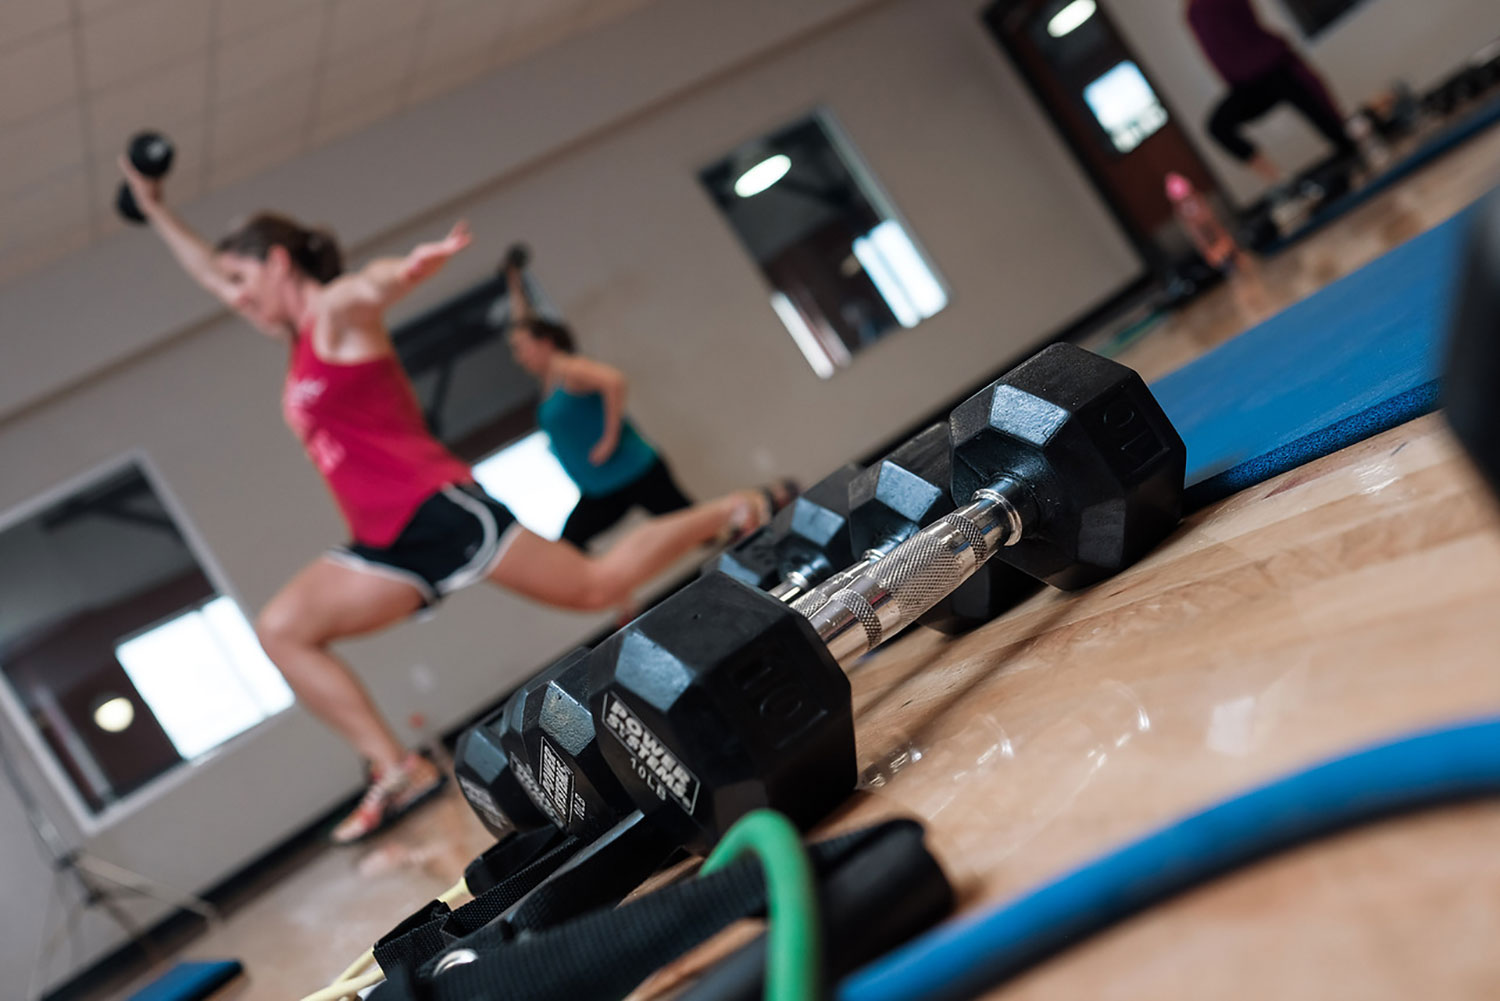 Women holding hand weights while taking a fitness class with weights and mats on the floor